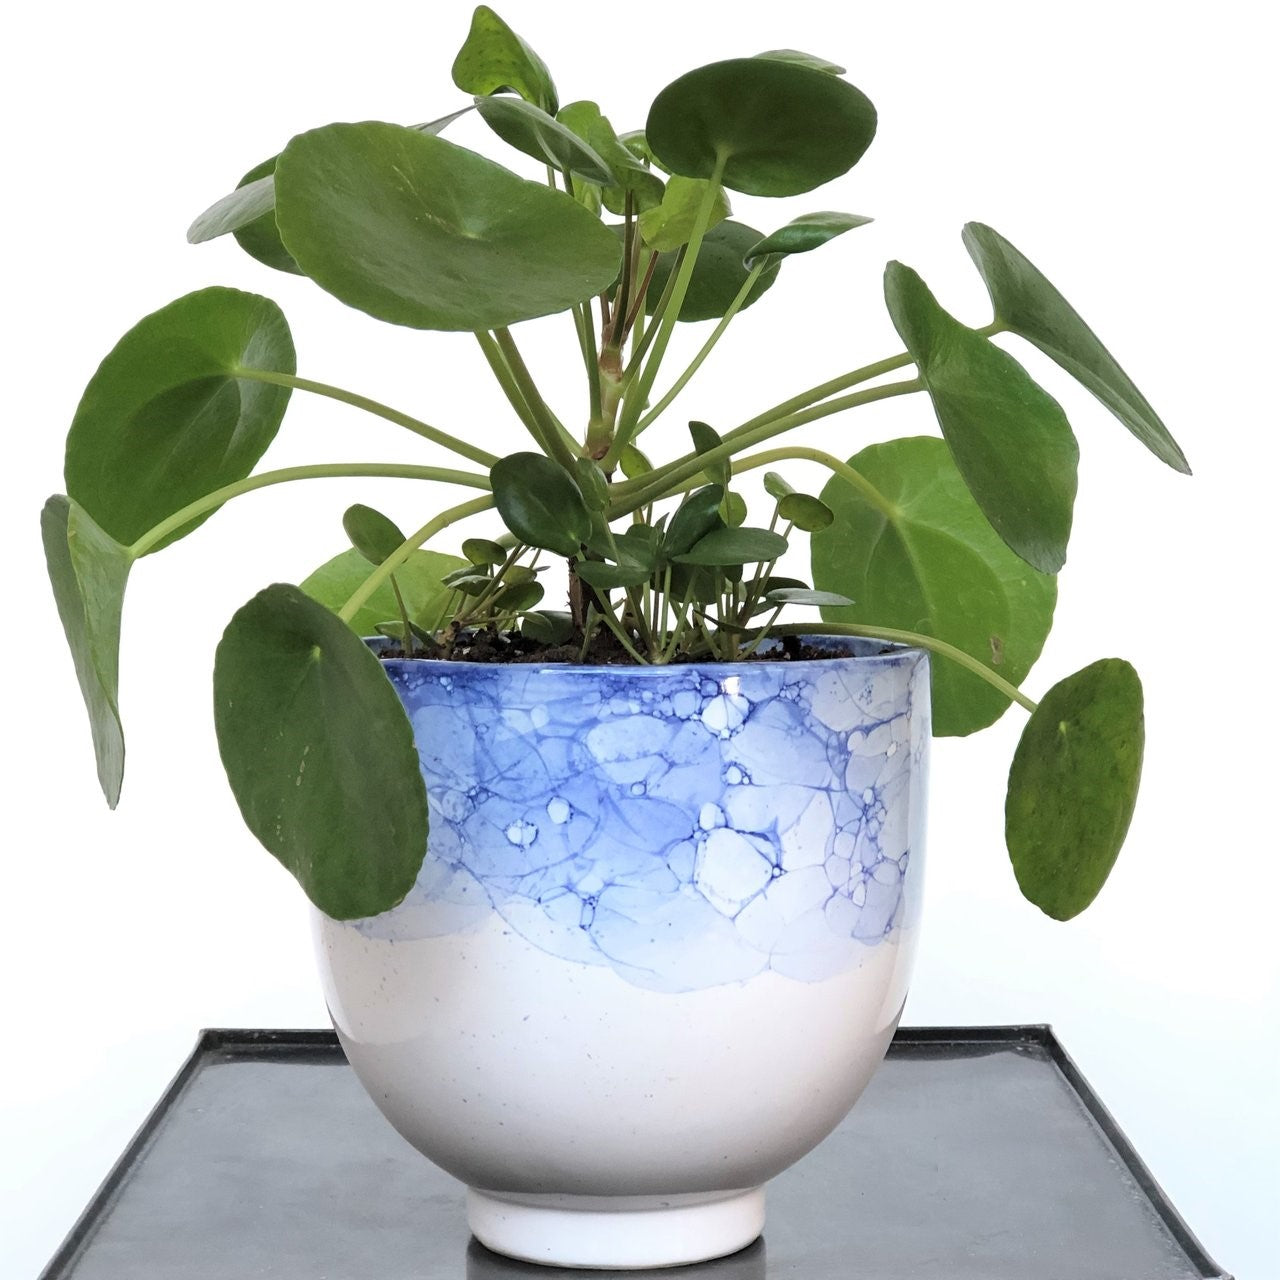 Stacy K Floral Pilea Peperomioides grow well in dry conditions, can adapt to low light areas, and are fast-growing which makes them a great low-maintenance plant for beginners. Pilea plants are happiest in a spot with bright indirect sun. Allow the soil to dry between waterings. Comes in a white and blue container.